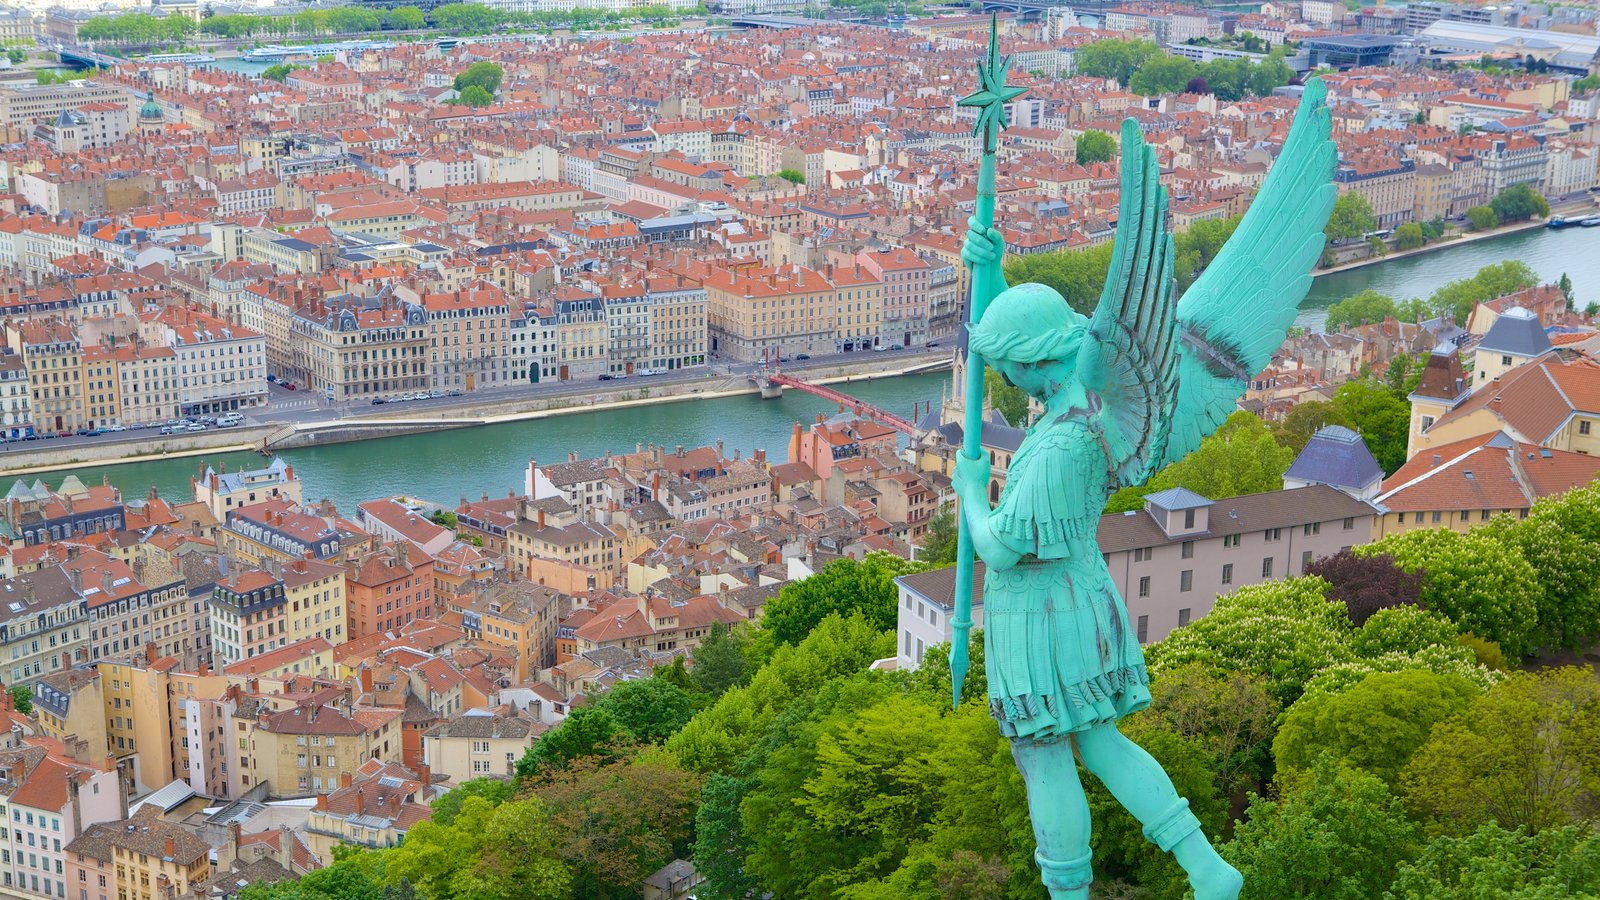 France which includes landscape views, a statue or sculpture and a city